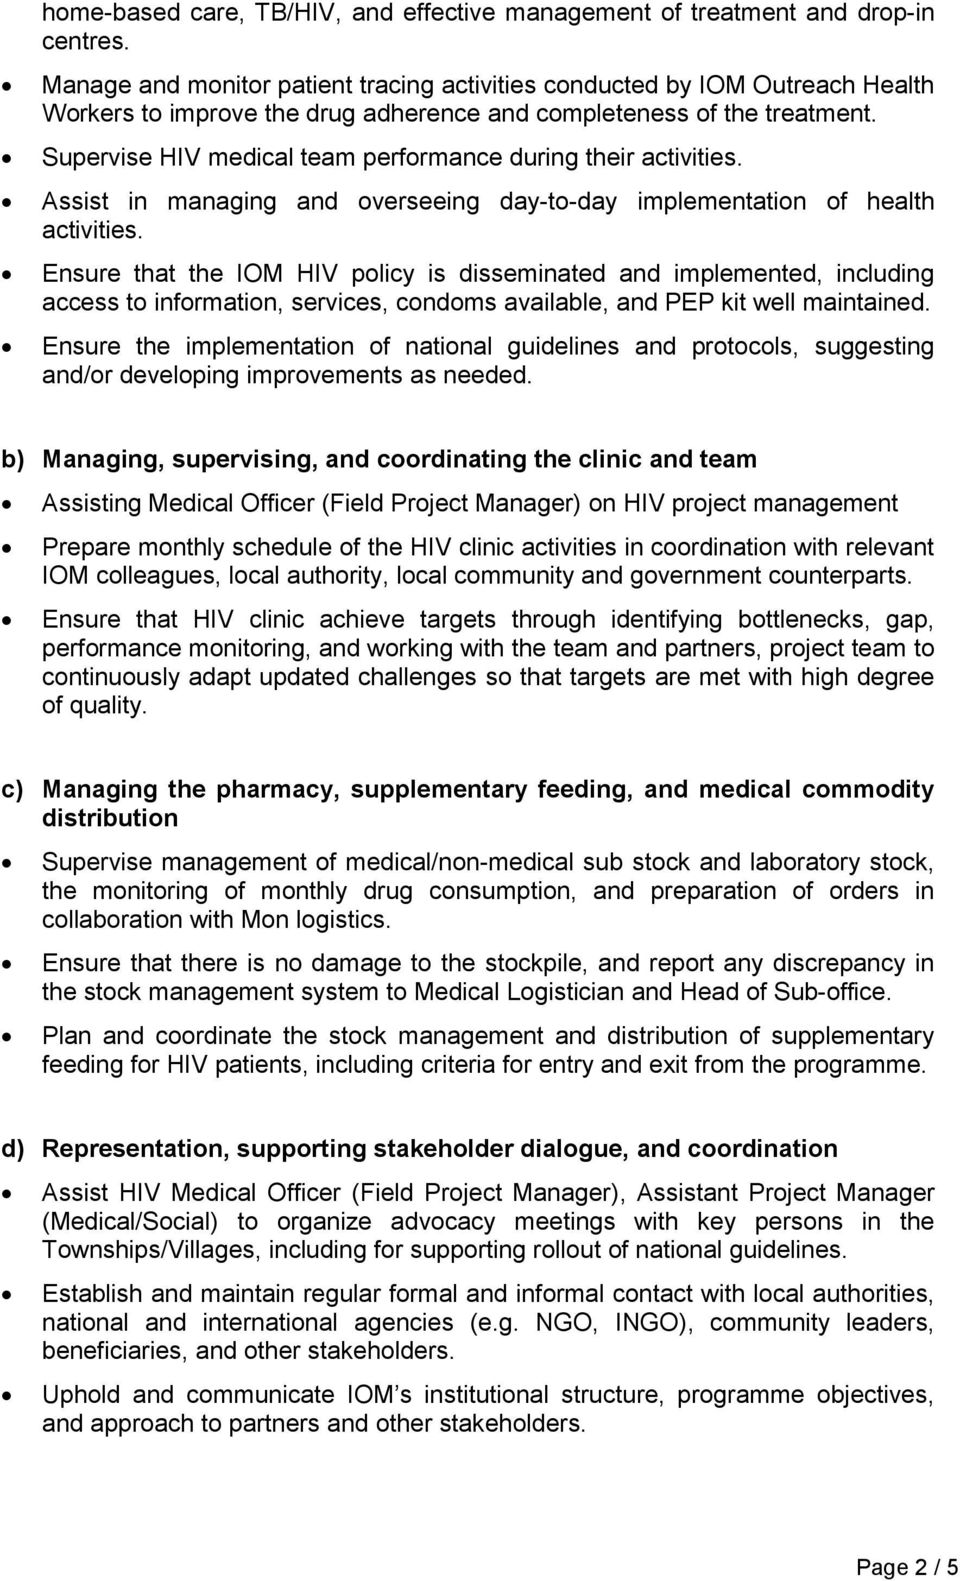 Supervise HIV medical team performance during their activities. Assist in managing and overseeing day-to-day implementation of health activities.